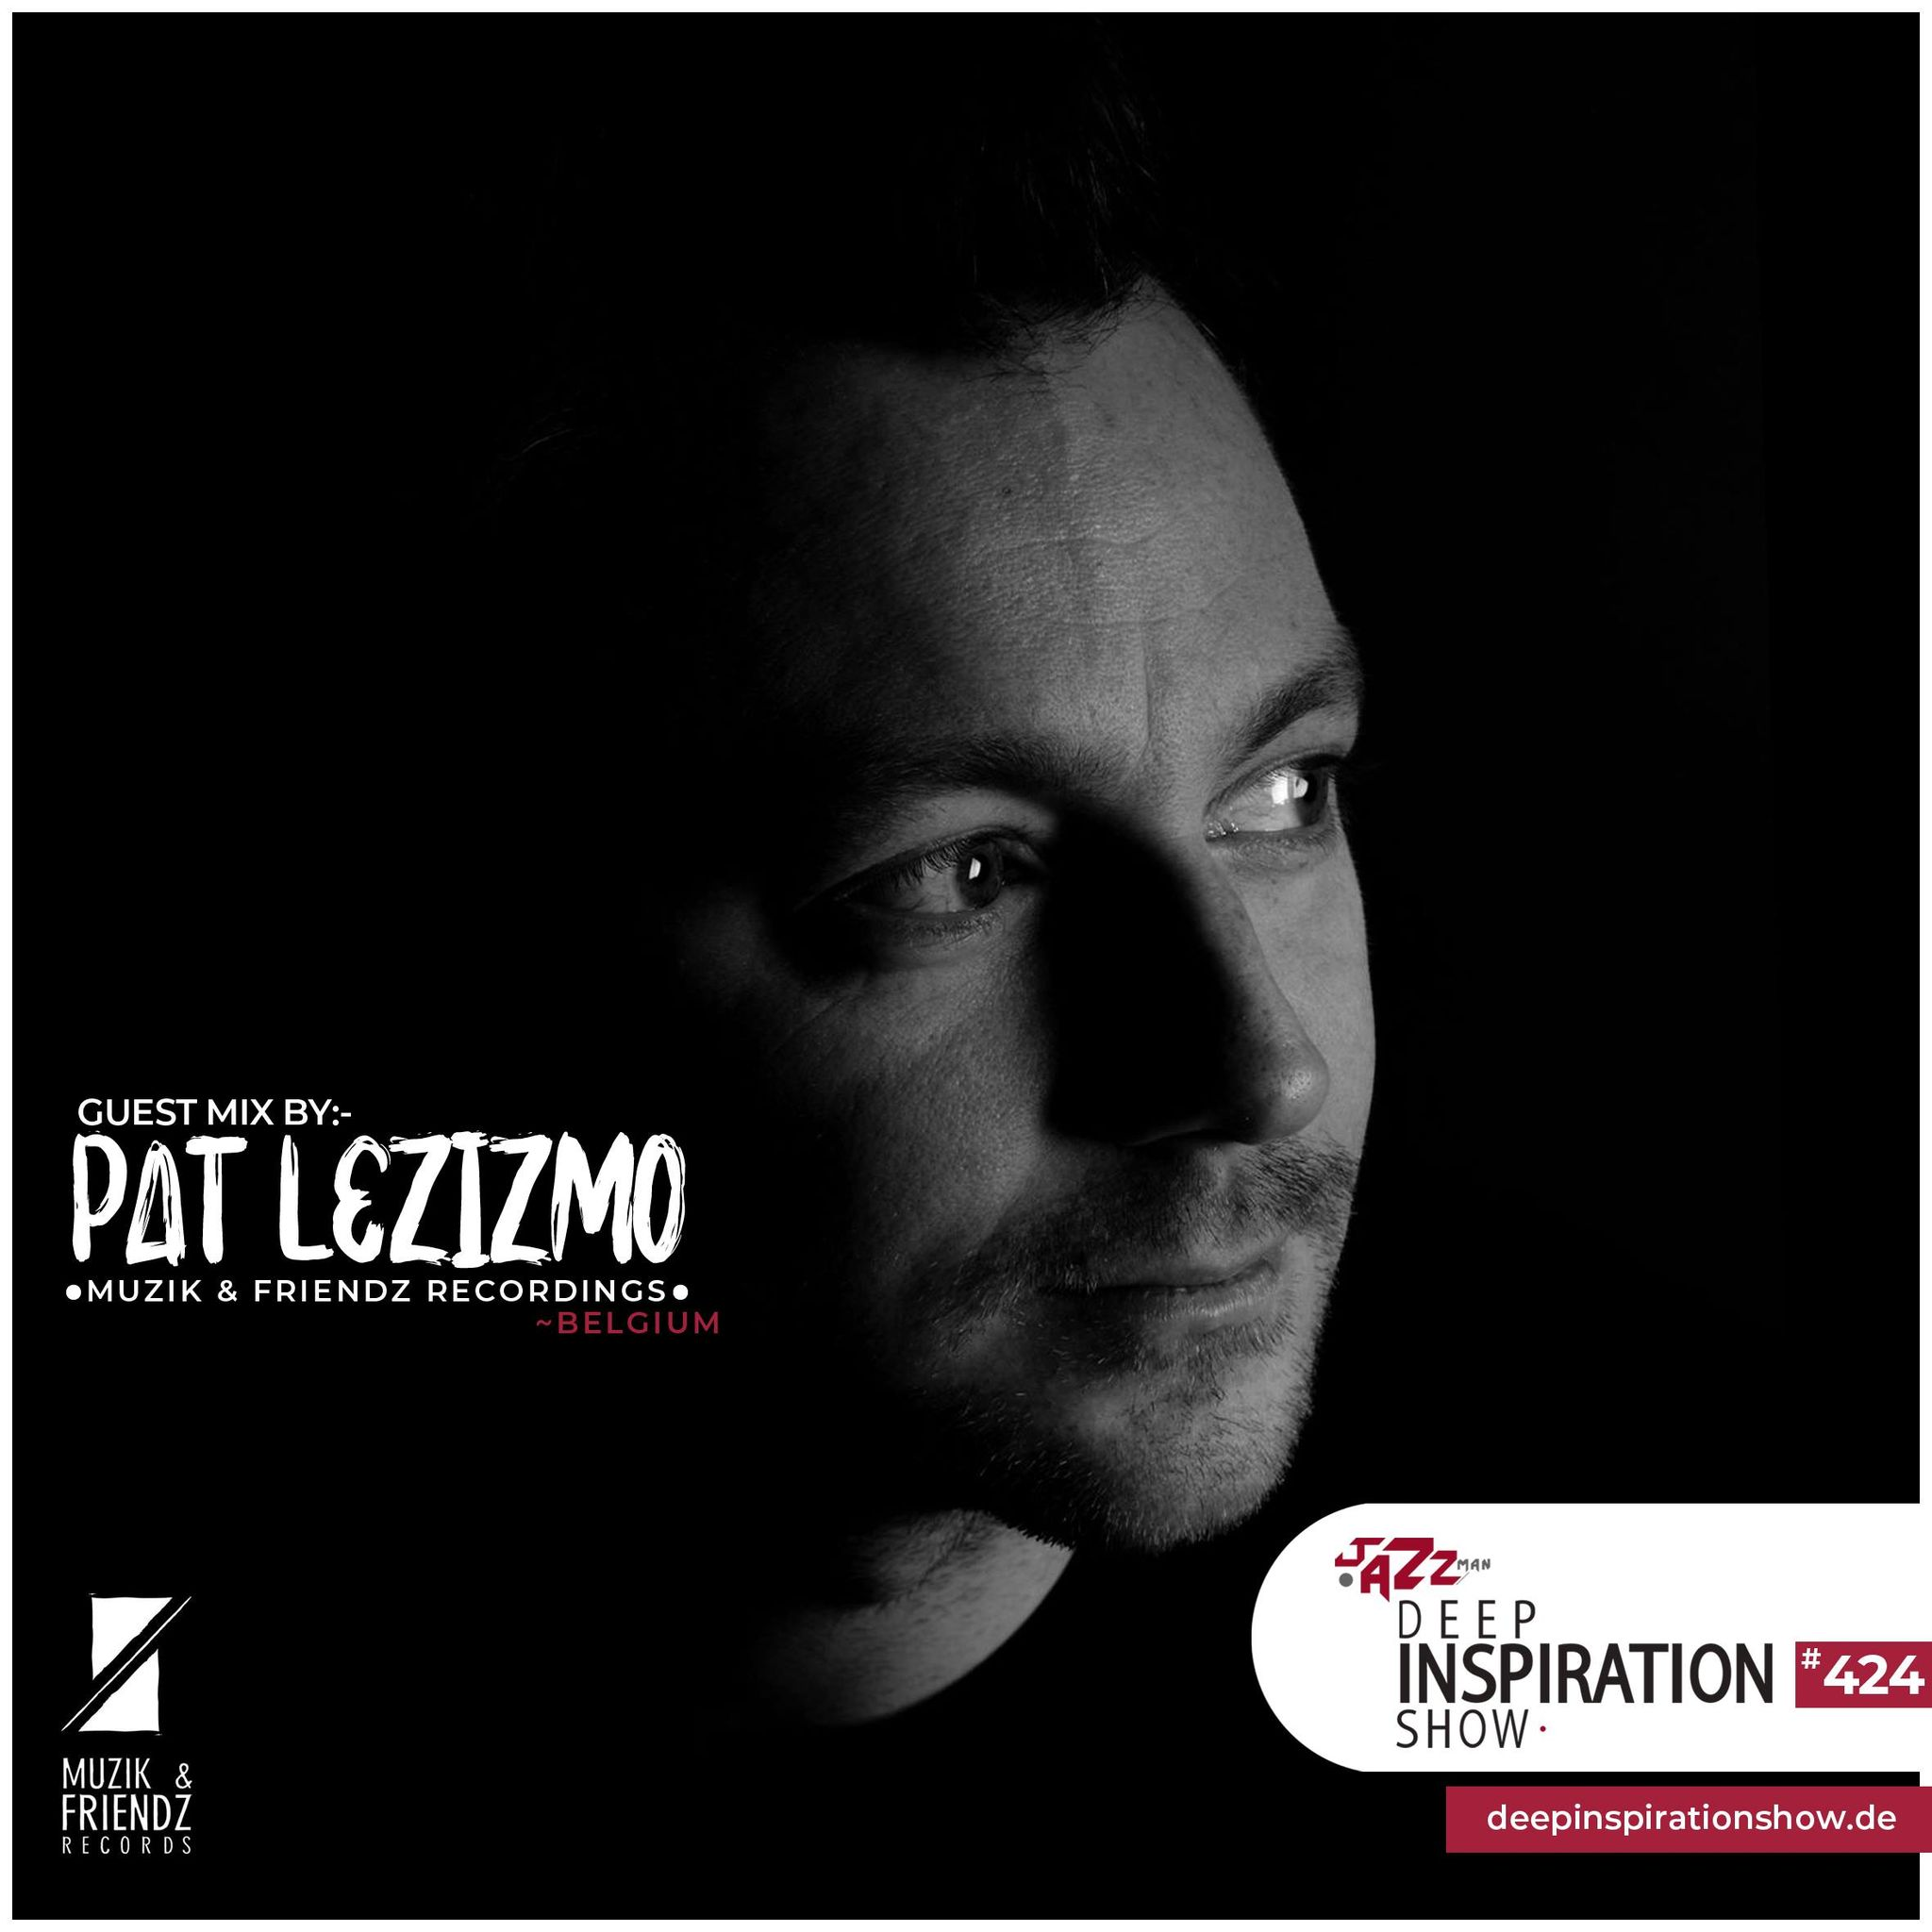 """Show 424 """"Guestmix by Pat Lezizmo"""""""